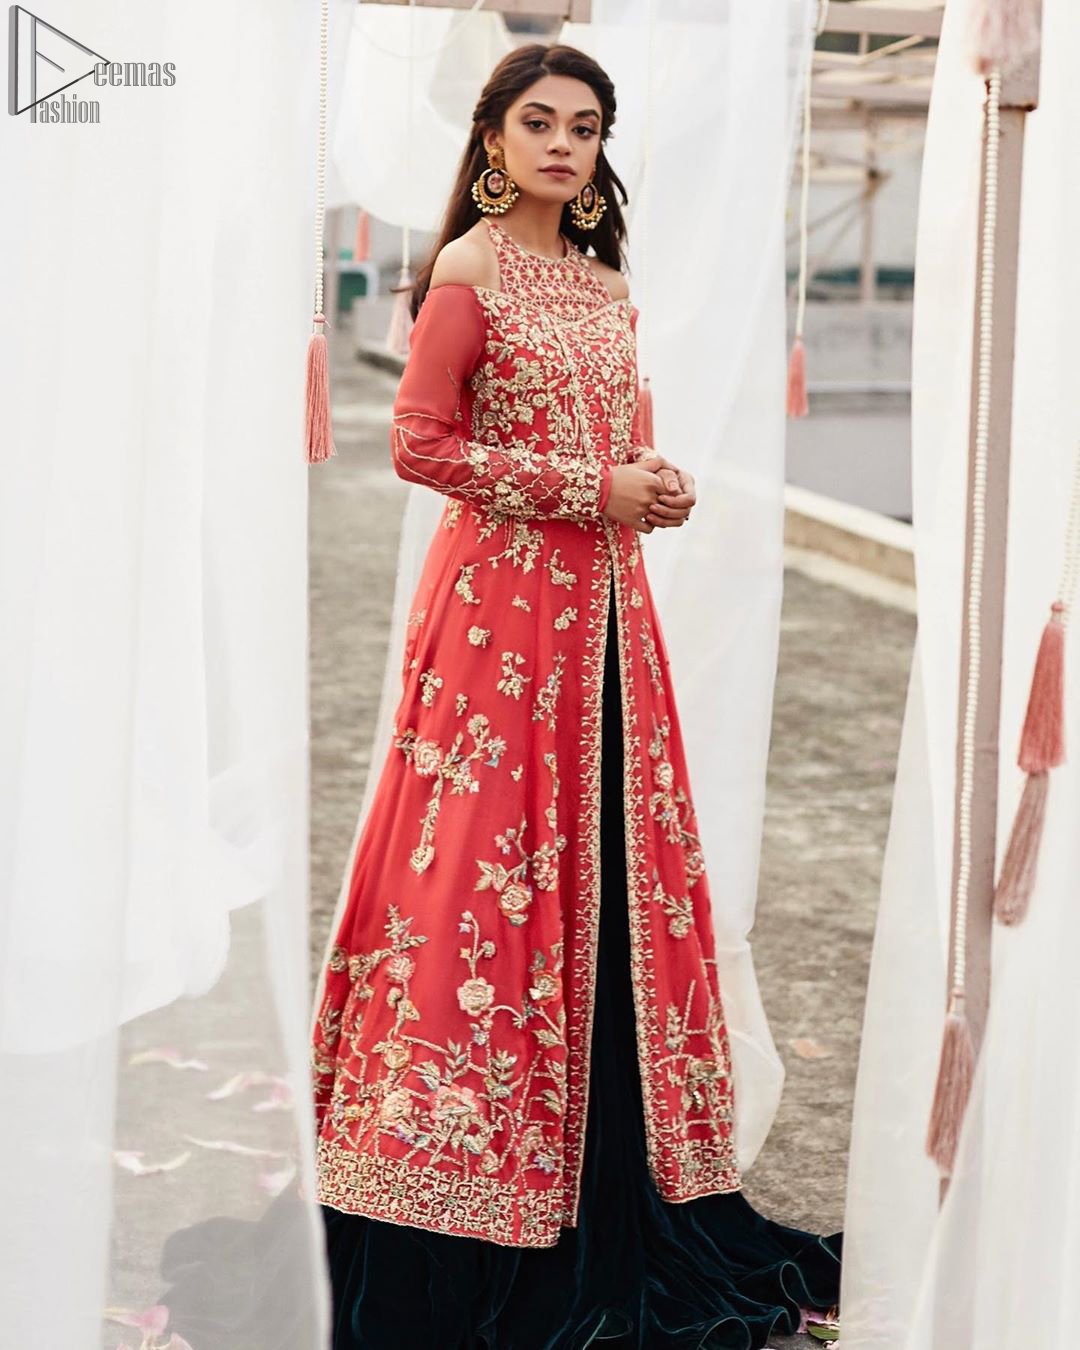 This outfit brings drama and playfulness to traditional frock and Sharara with a modern approach. Drape yourself to perfection for the classic affair in this flattering front open ensemble festooned with intricate zardozi hand embroidery work and motifs. The frock is furthermore adorned with halter neckline and comprises with overlaped bodice. Embellishment is done with zardozi embroidery in silver color. This outfit is comprises with bottle green velvet sharara and coral chiffon dupatta with sequins spray all over.